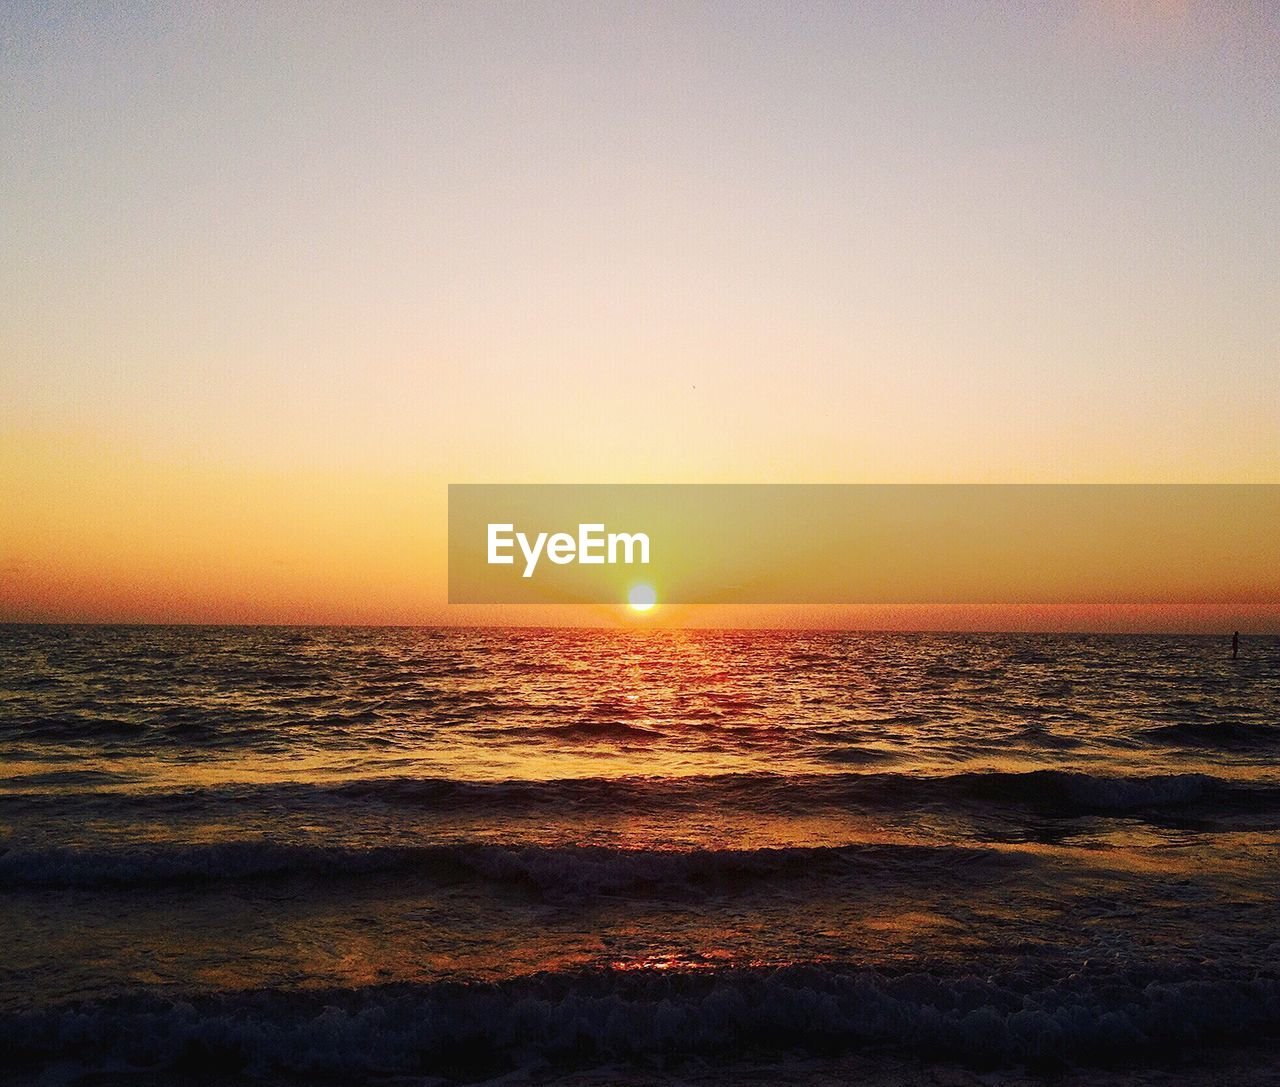 sunset, sea, scenics, beauty in nature, nature, water, horizon over water, tranquil scene, tranquility, sun, sky, idyllic, no people, beach, outdoors, silhouette, waterfront, wave, travel destinations, clear sky